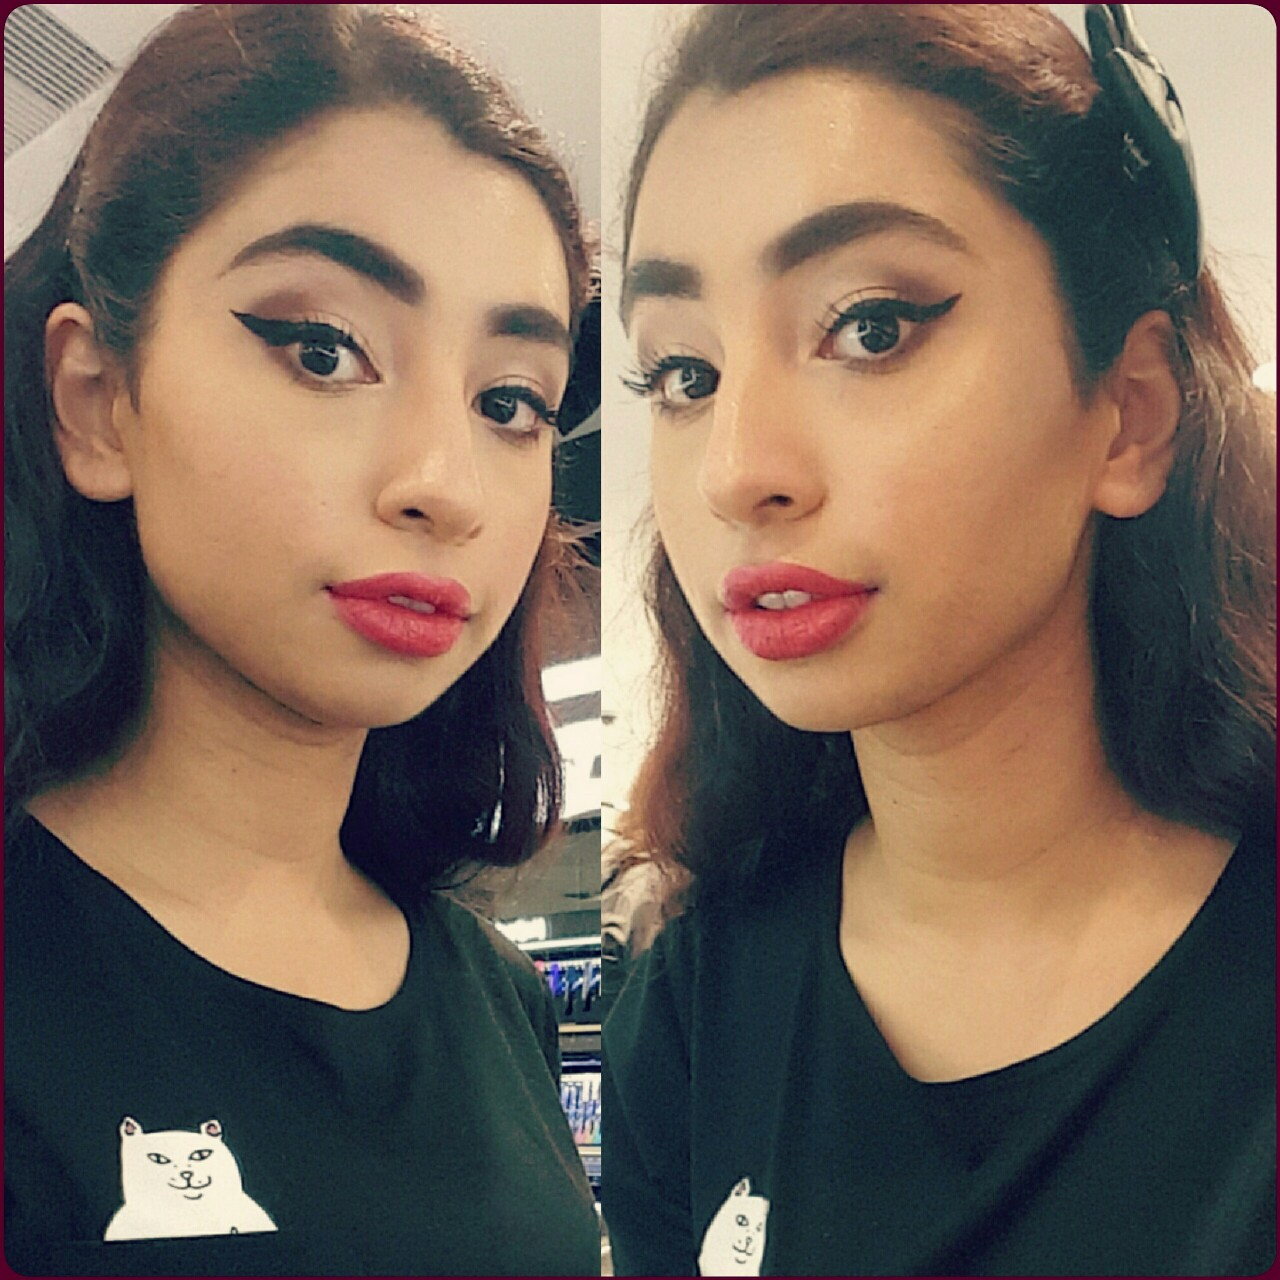 This is what happens when you ask a Sephora employee for a 'light, casual' makeover.